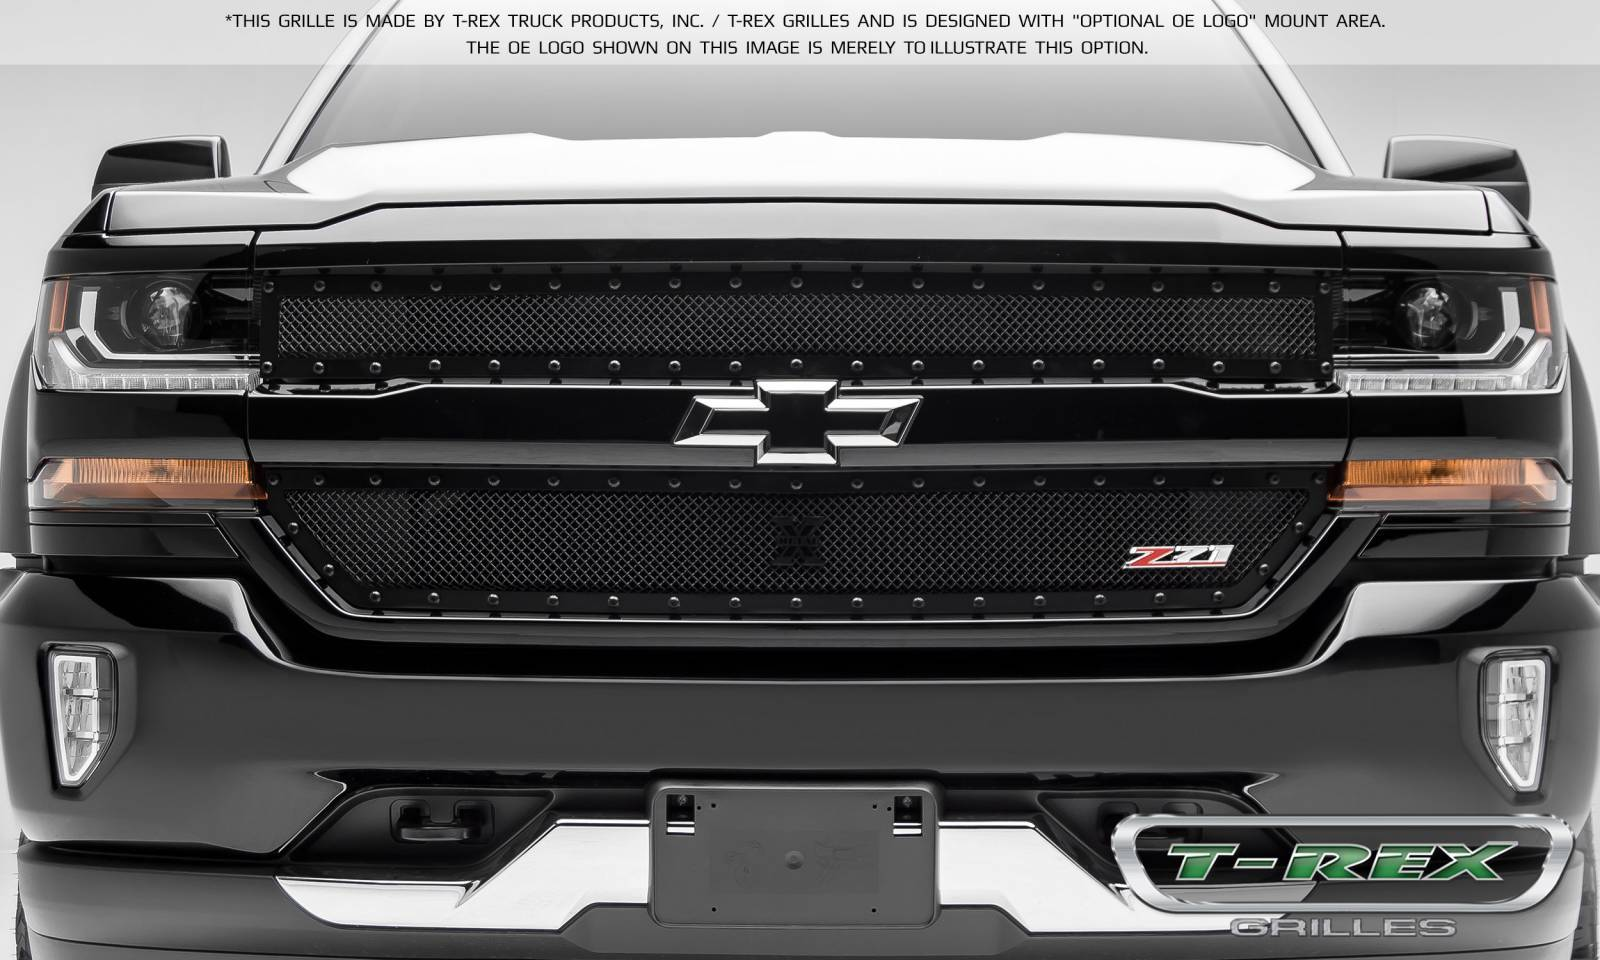 New Grille Options For The Chevrolet Silverado 1500